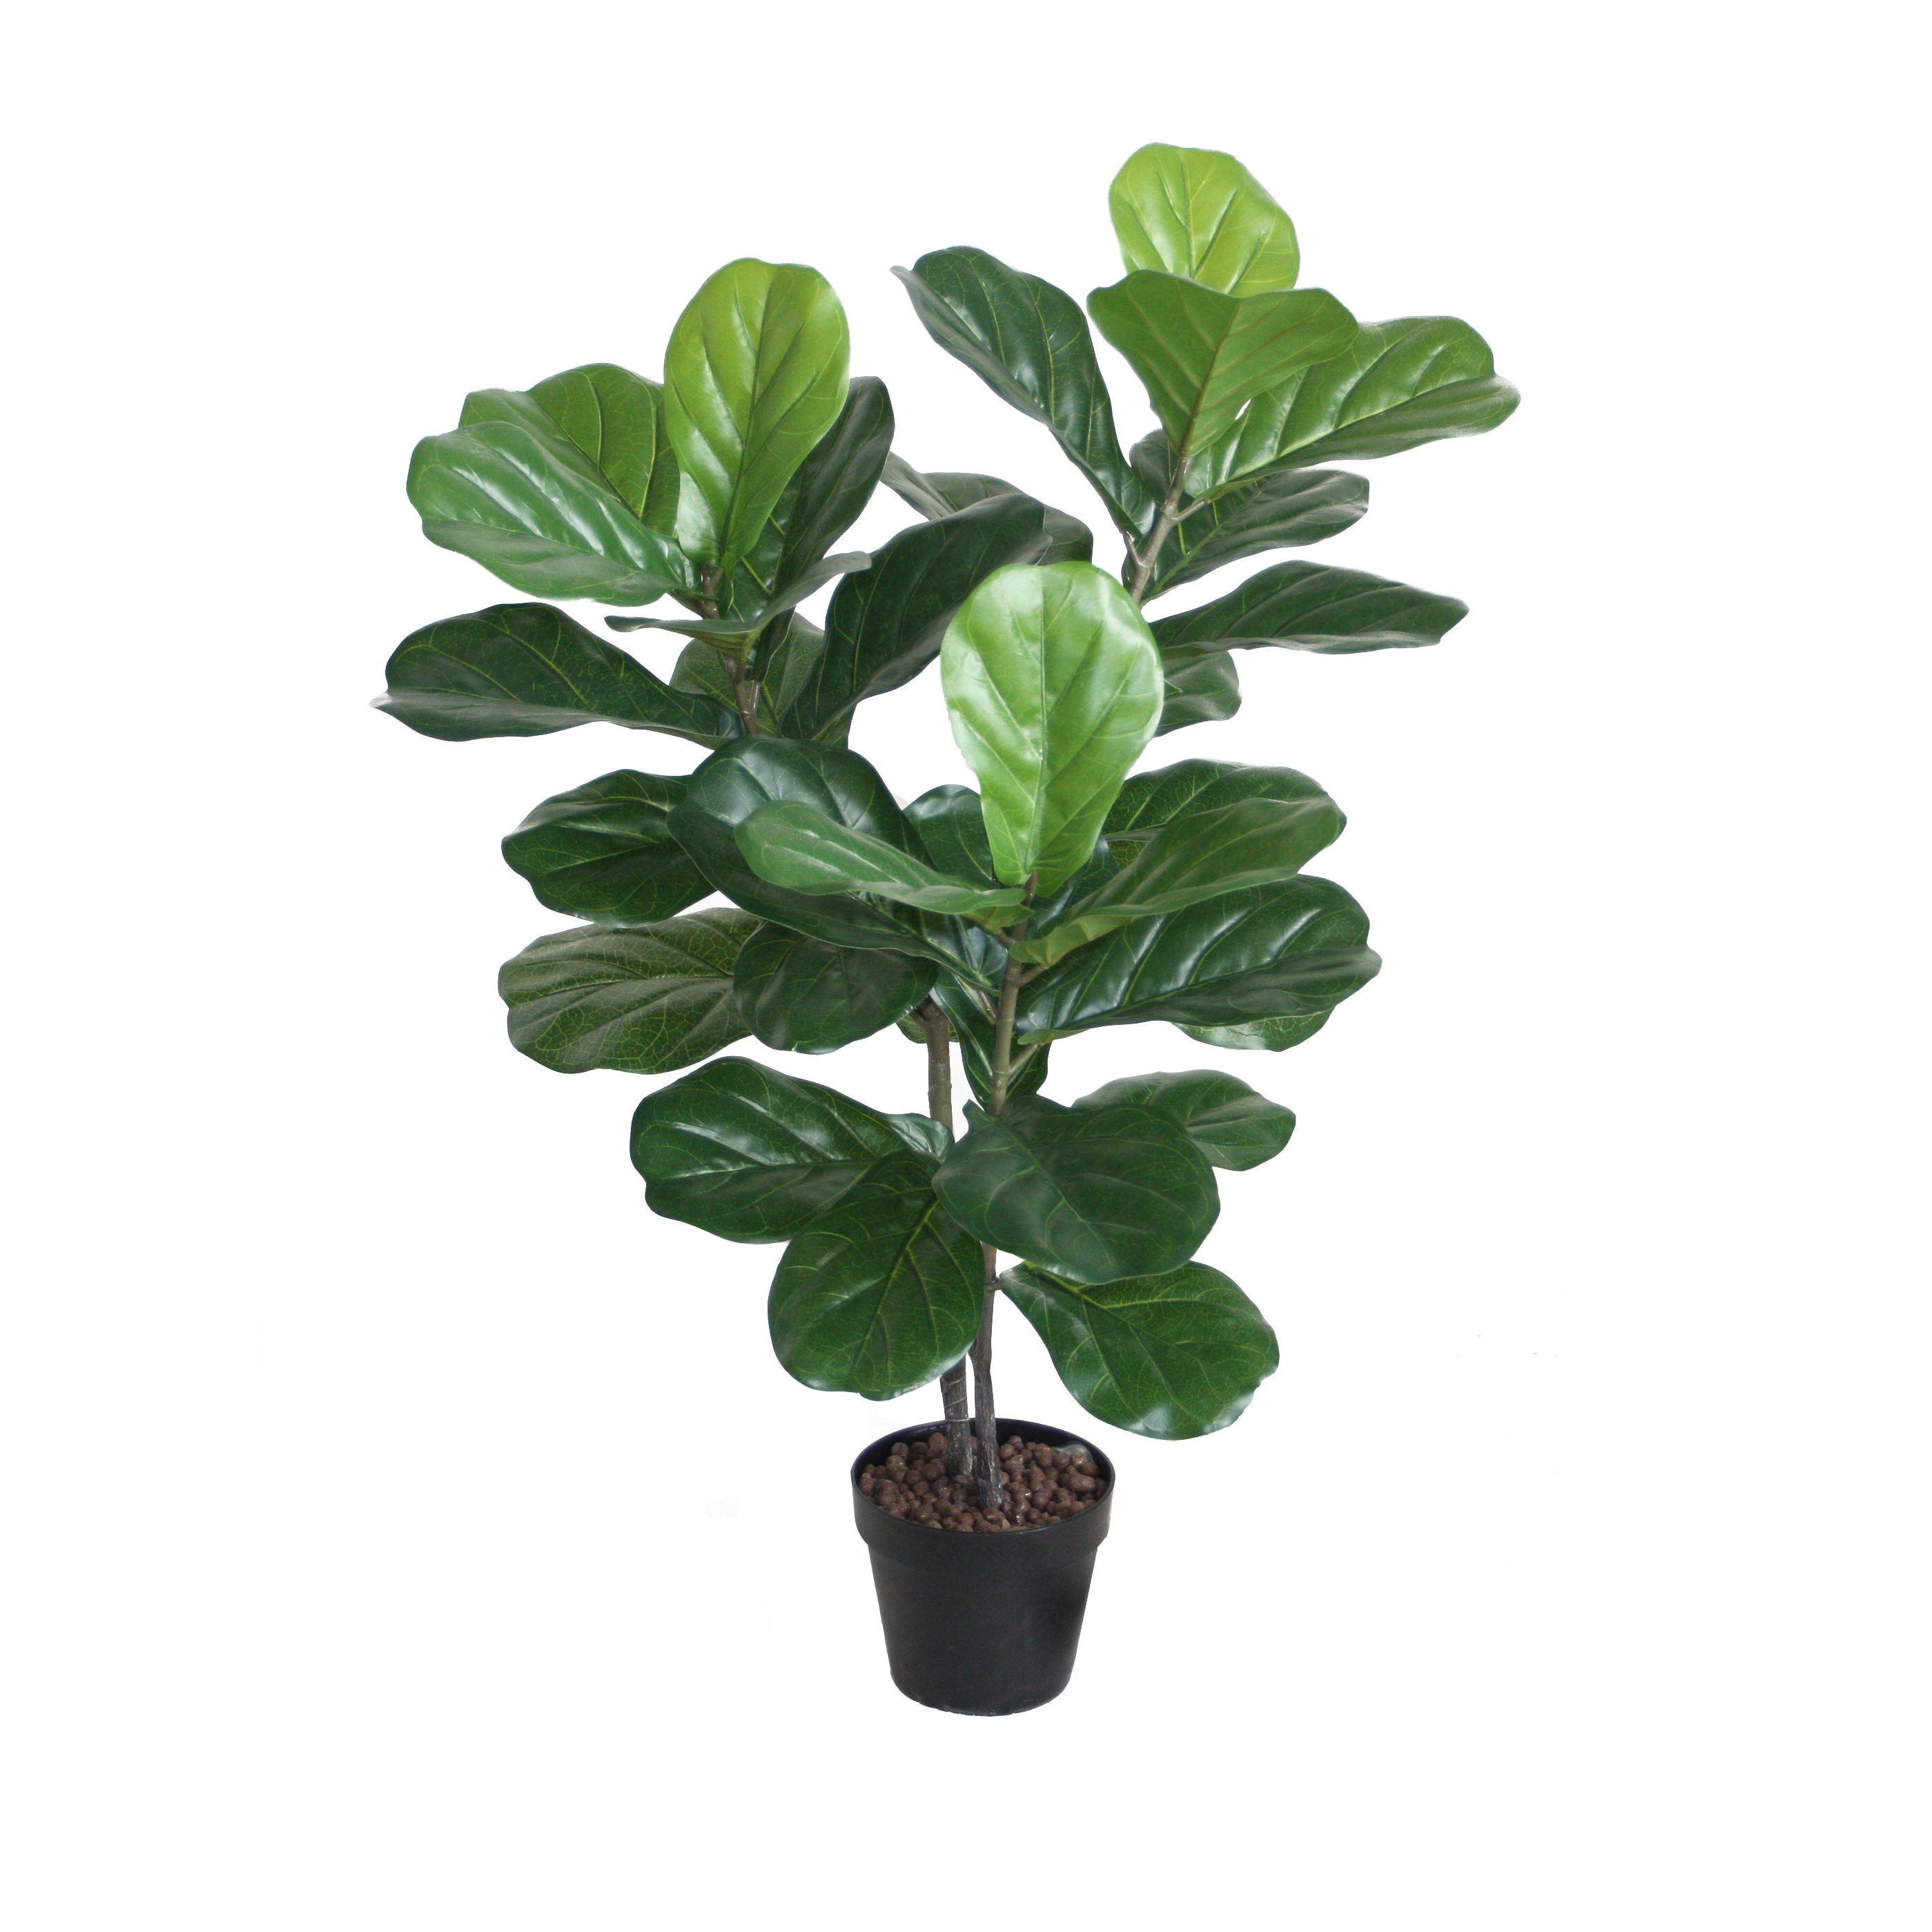 Fiddle Leaf Fig Tree Artificial Fiddle Leaf Fig Tree 1m With 34 Large Leaves